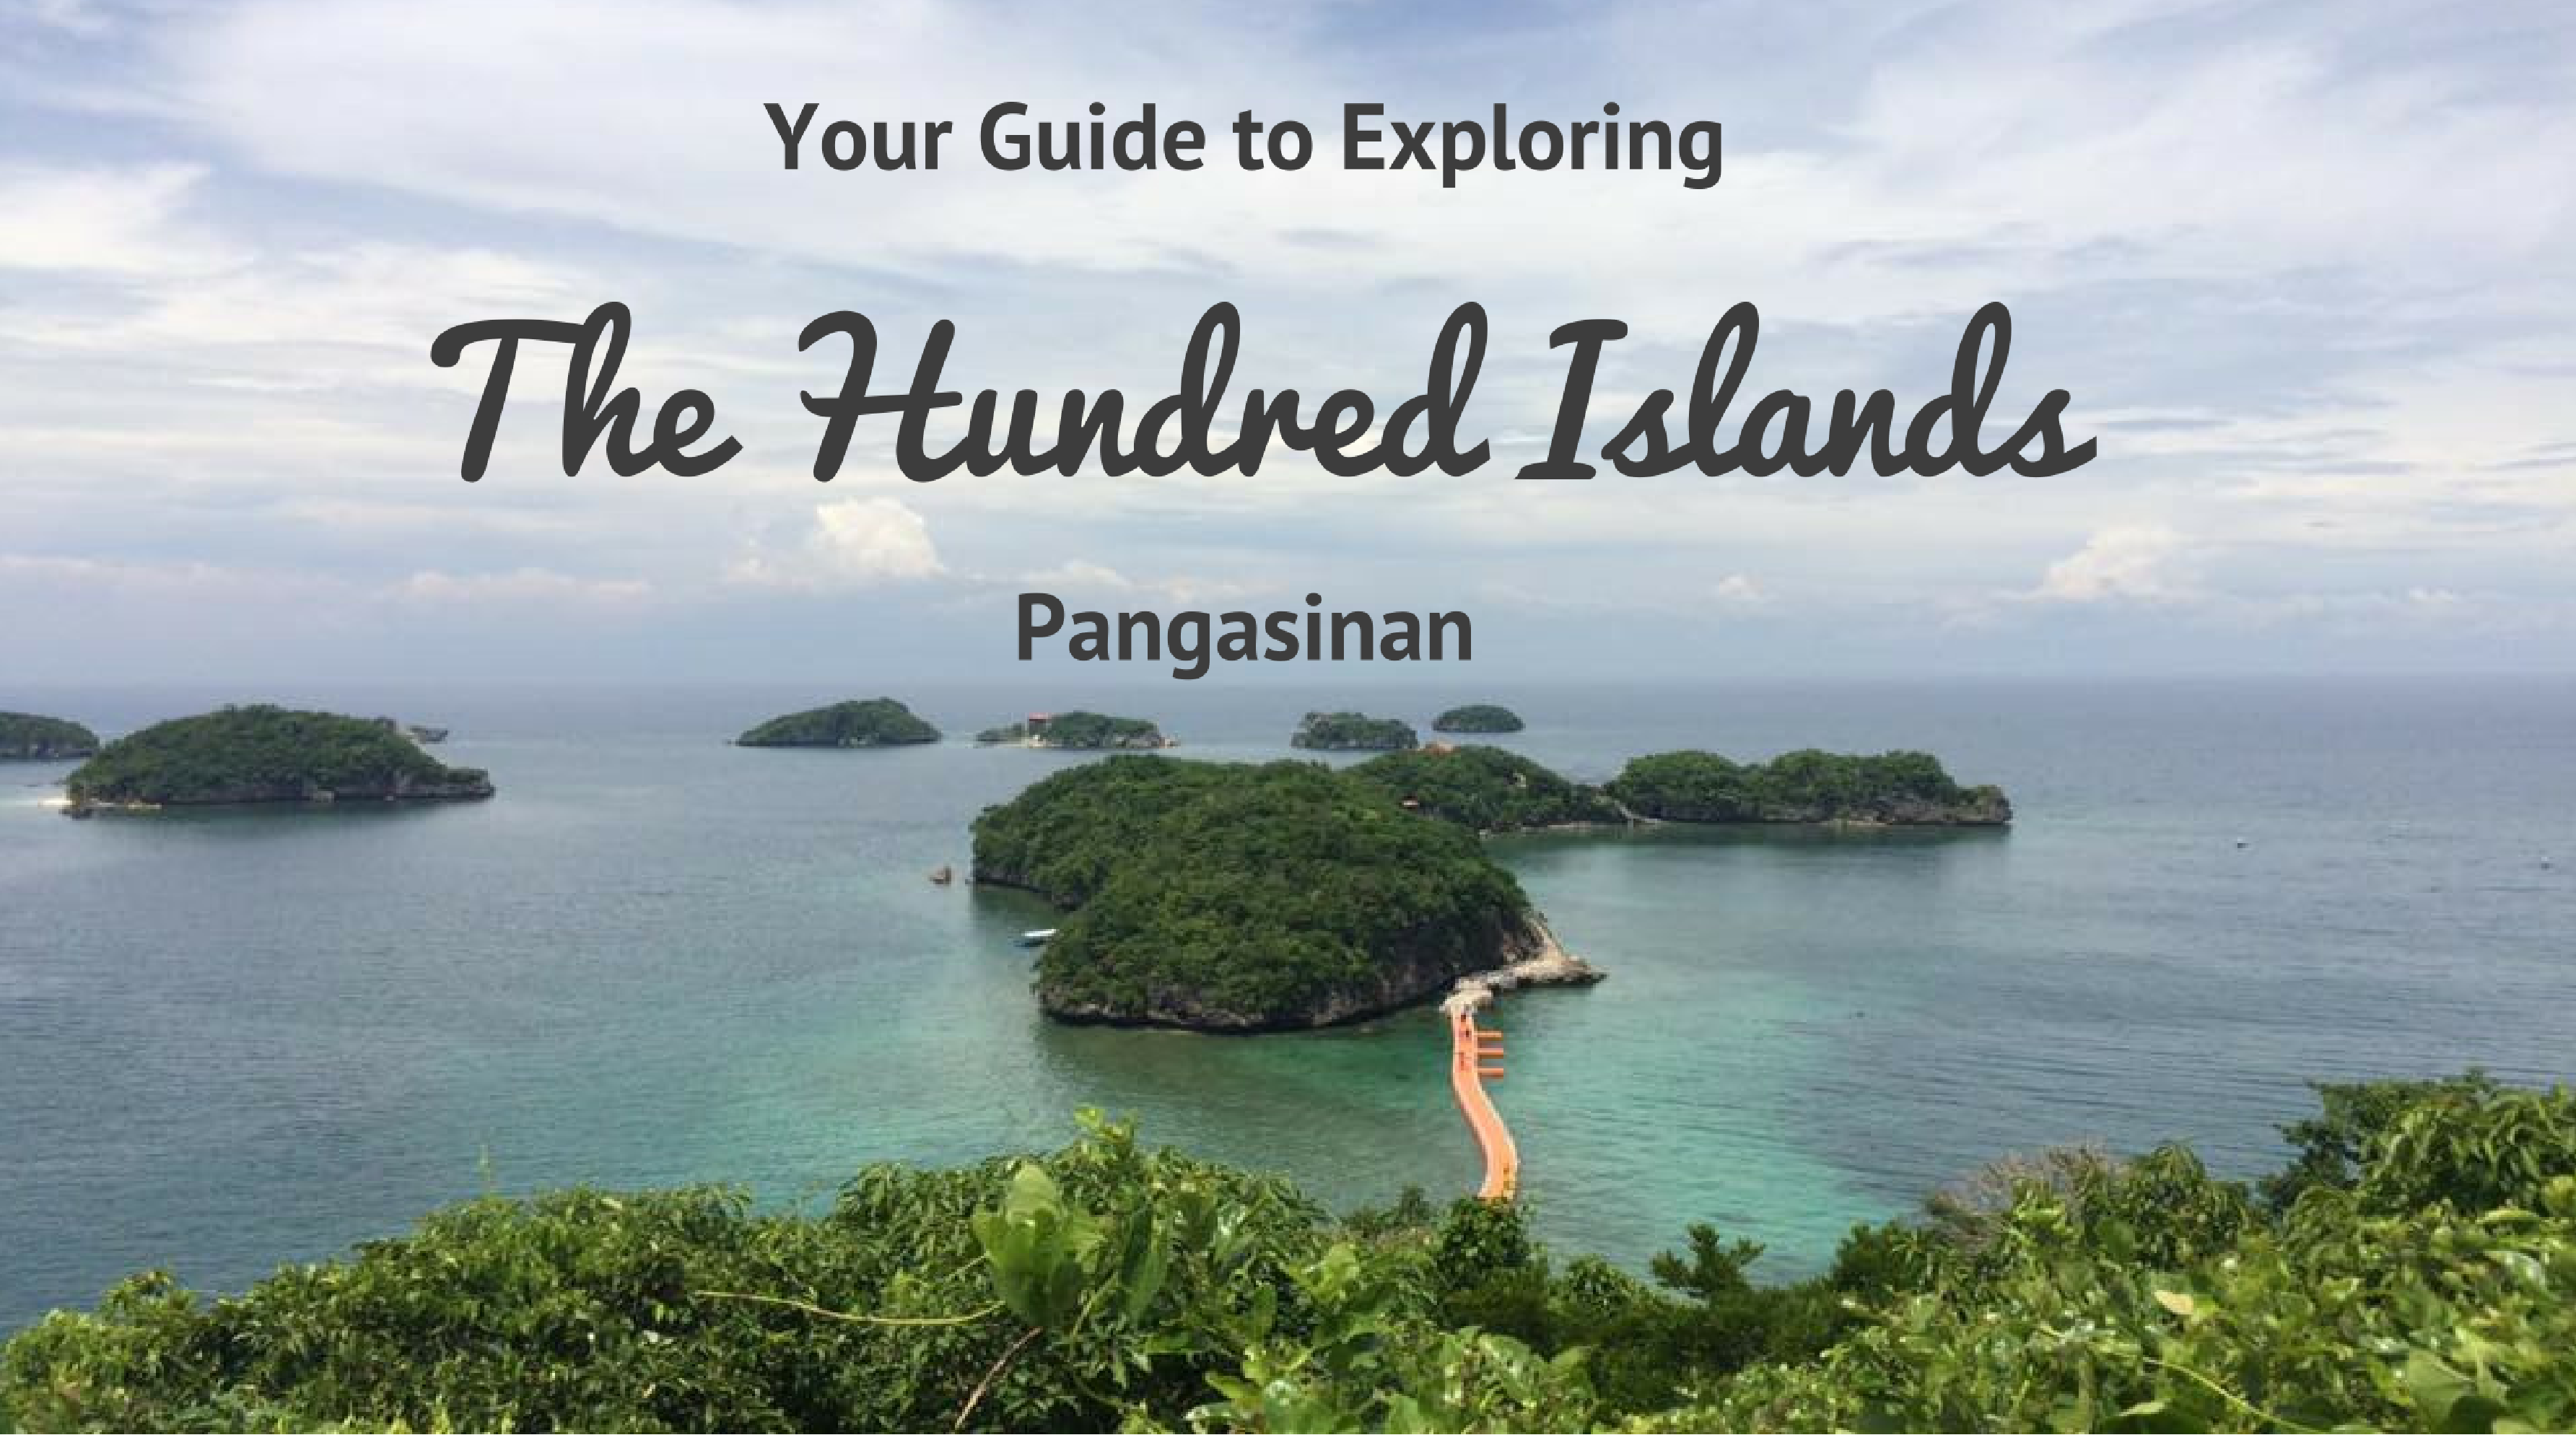 guide-hundred-islands-pangasinan2